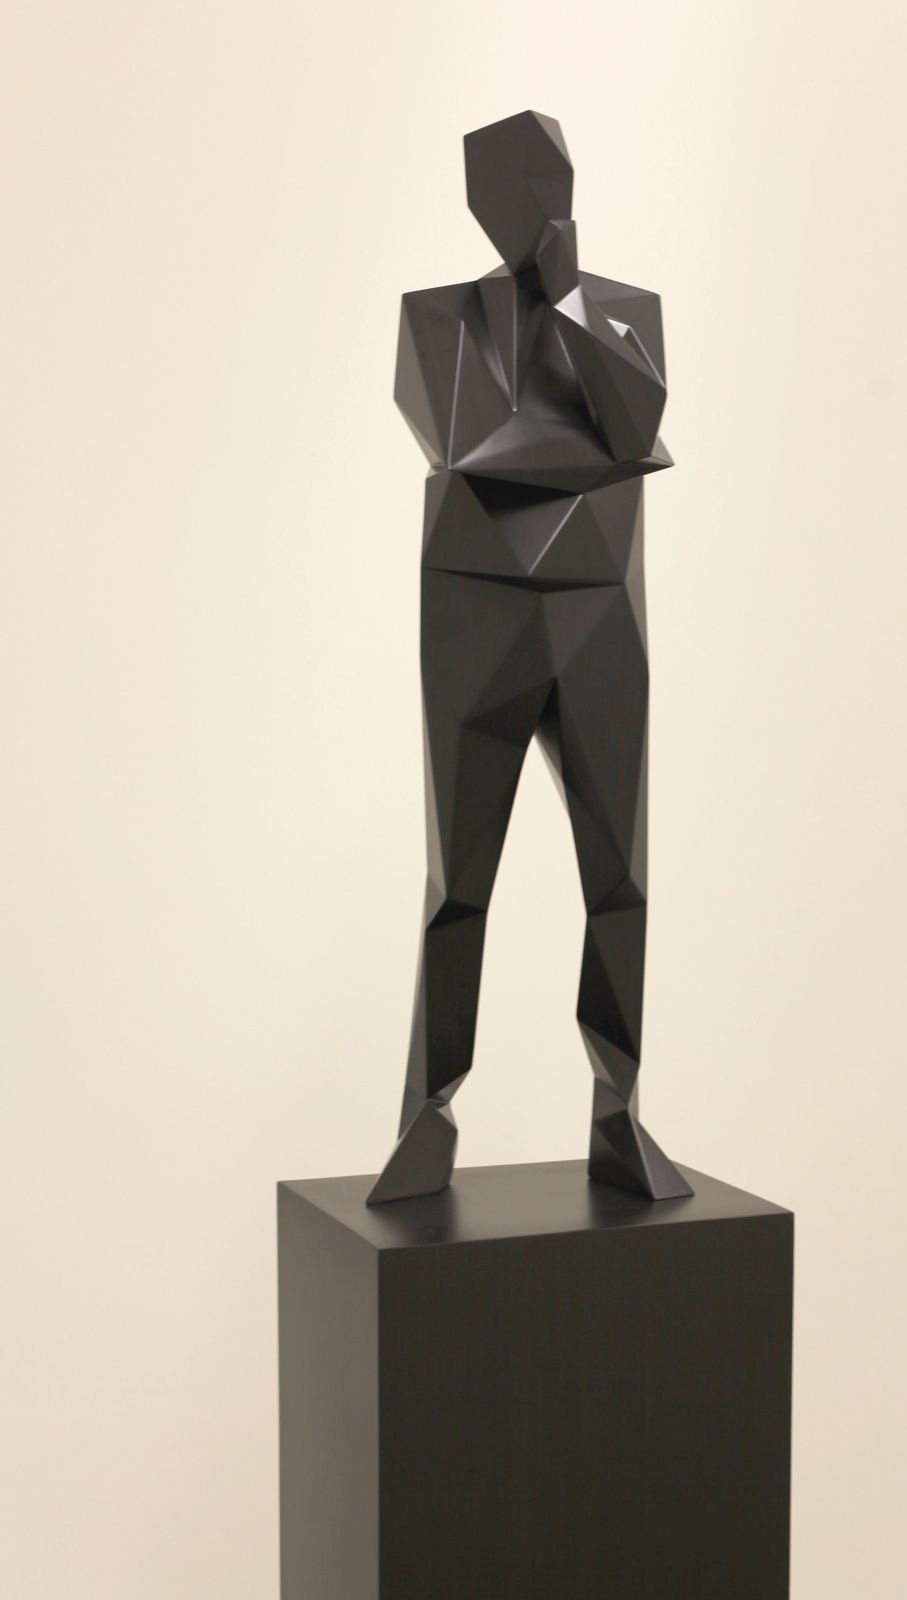 """Philippe Zdar"", 2017 de Xavier VEILHAN - Courtesy Galerie PERROTIN © Photo Éric Simon"